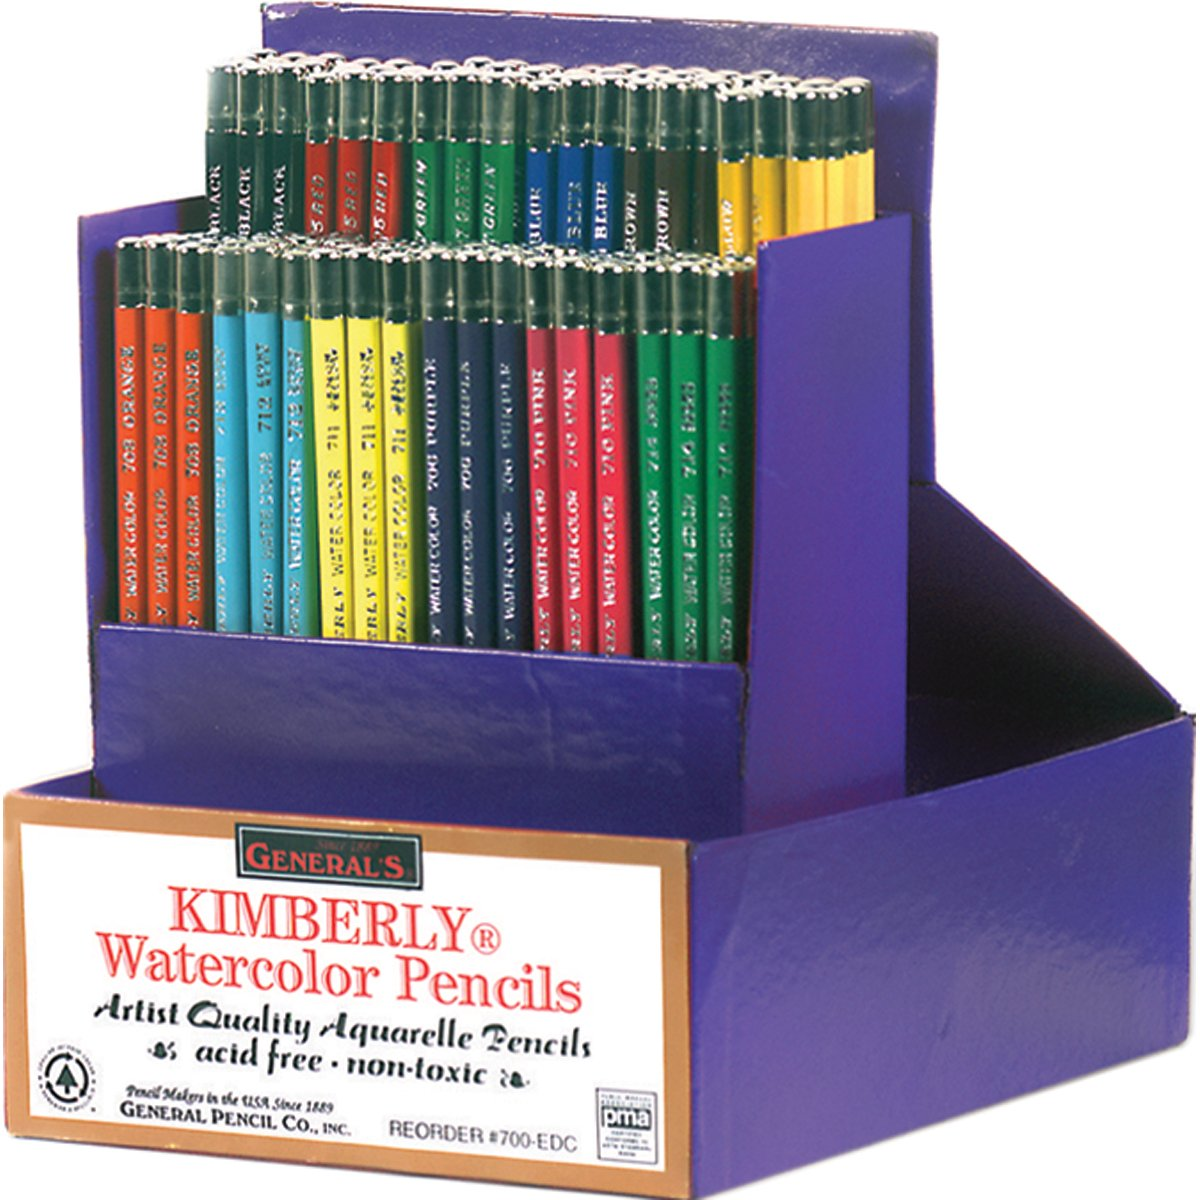 Kimberly Watercolor Pencils Classroom Art Packs- (並行輸入品) B00SA831VE